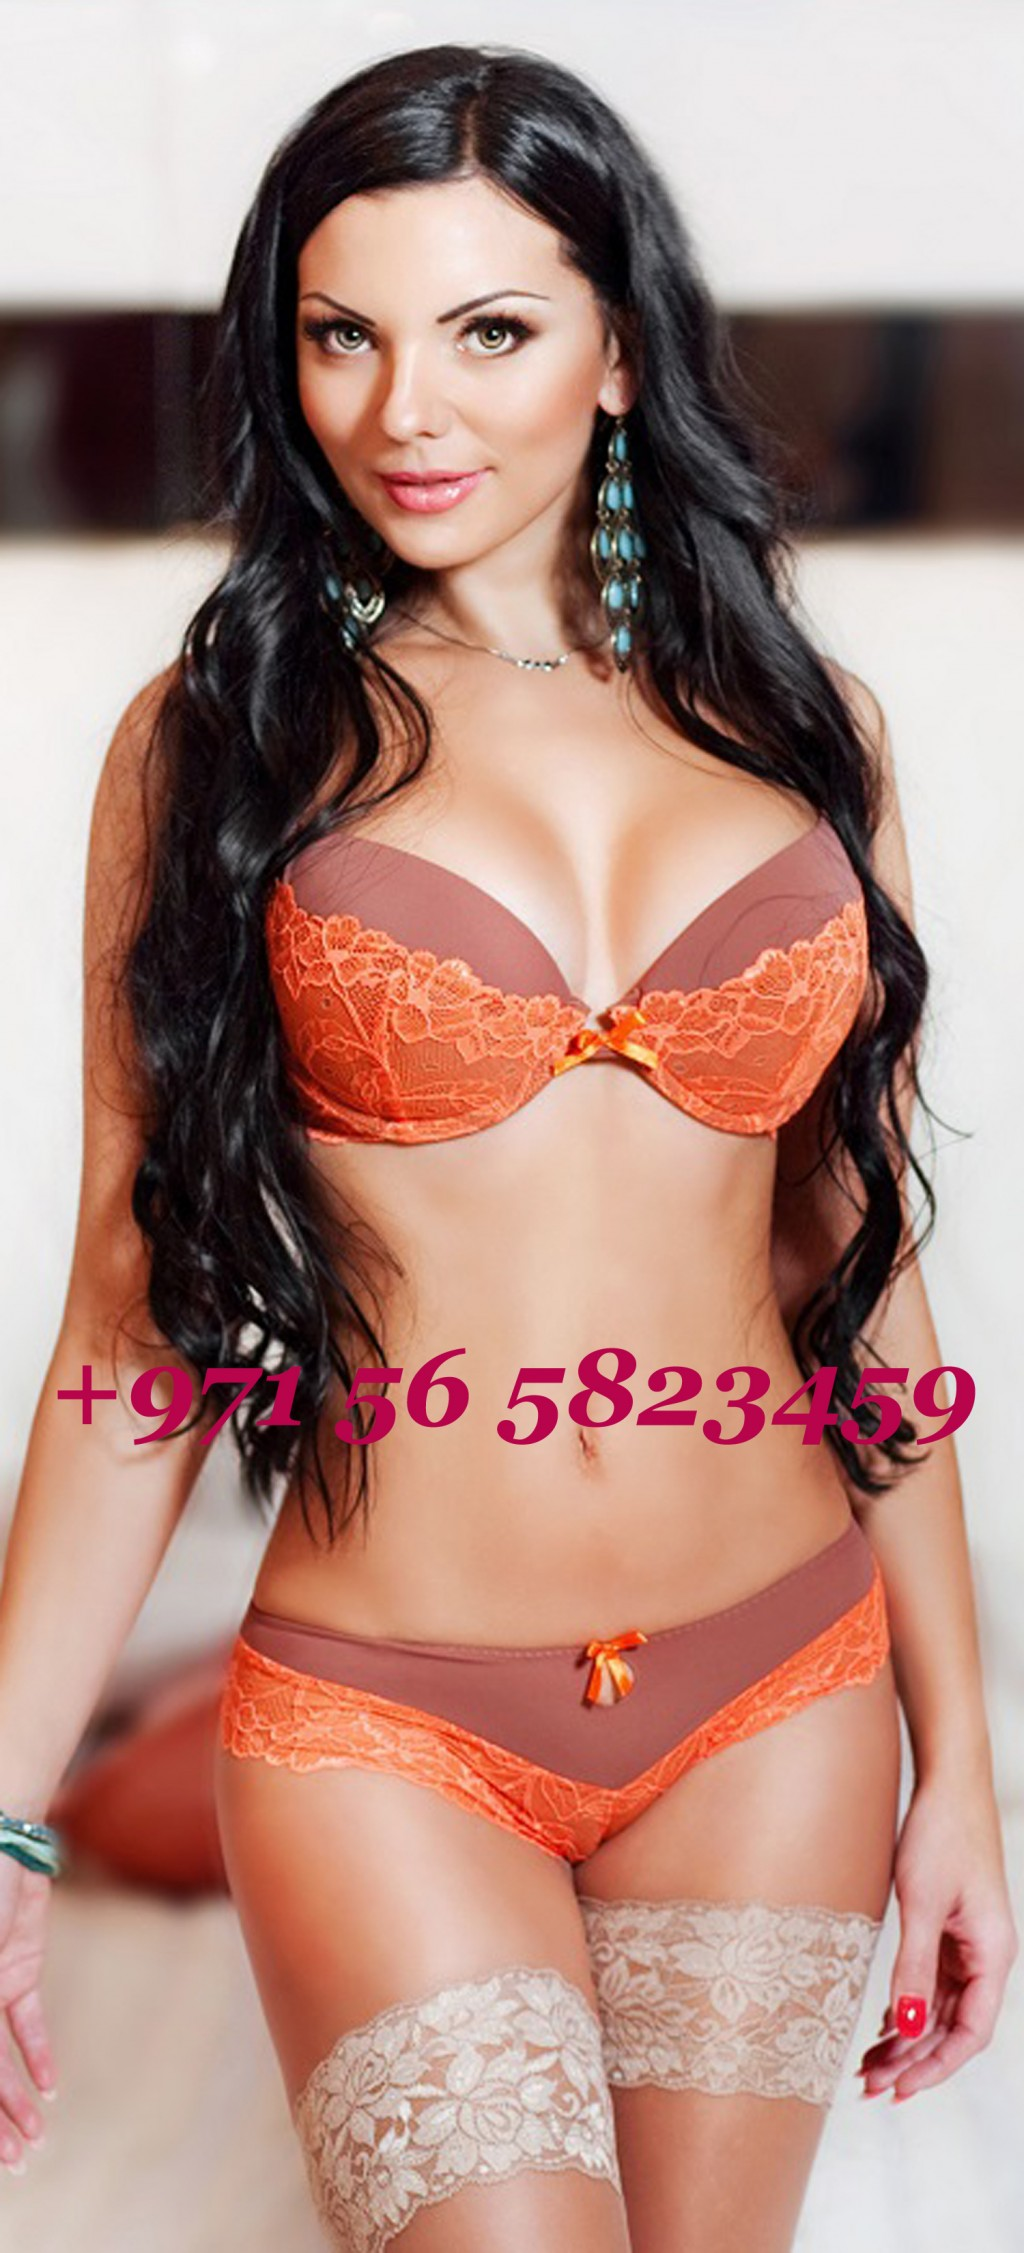 amelia escort real erotic massage